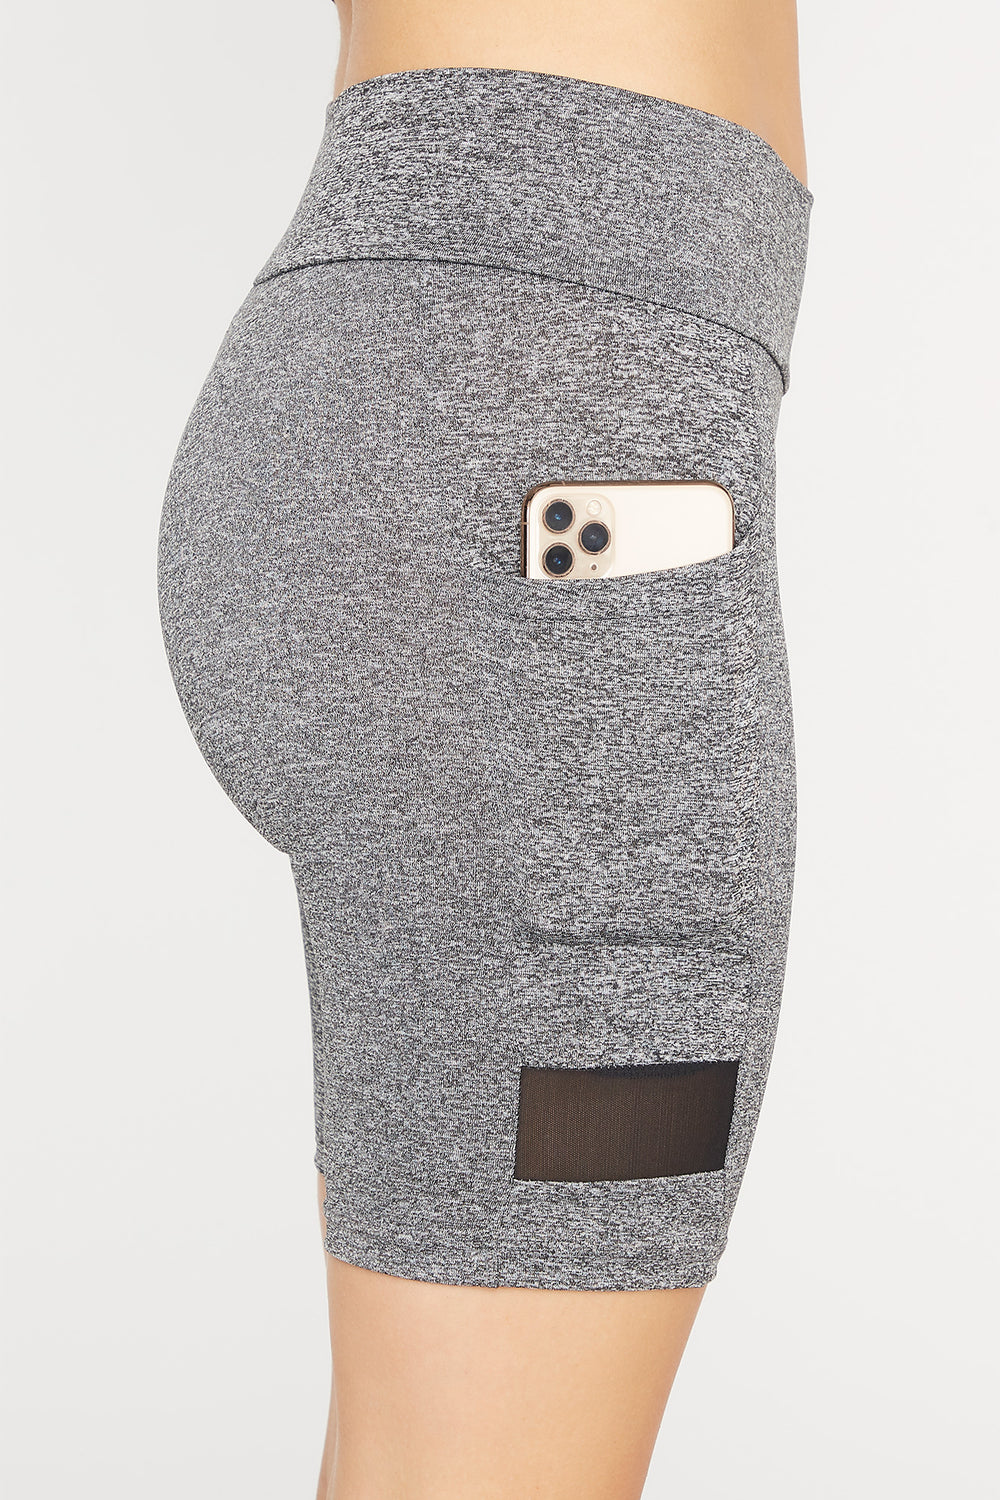 Grey Contrast Mesh High-Rise Pocket Biker Short Heather Grey